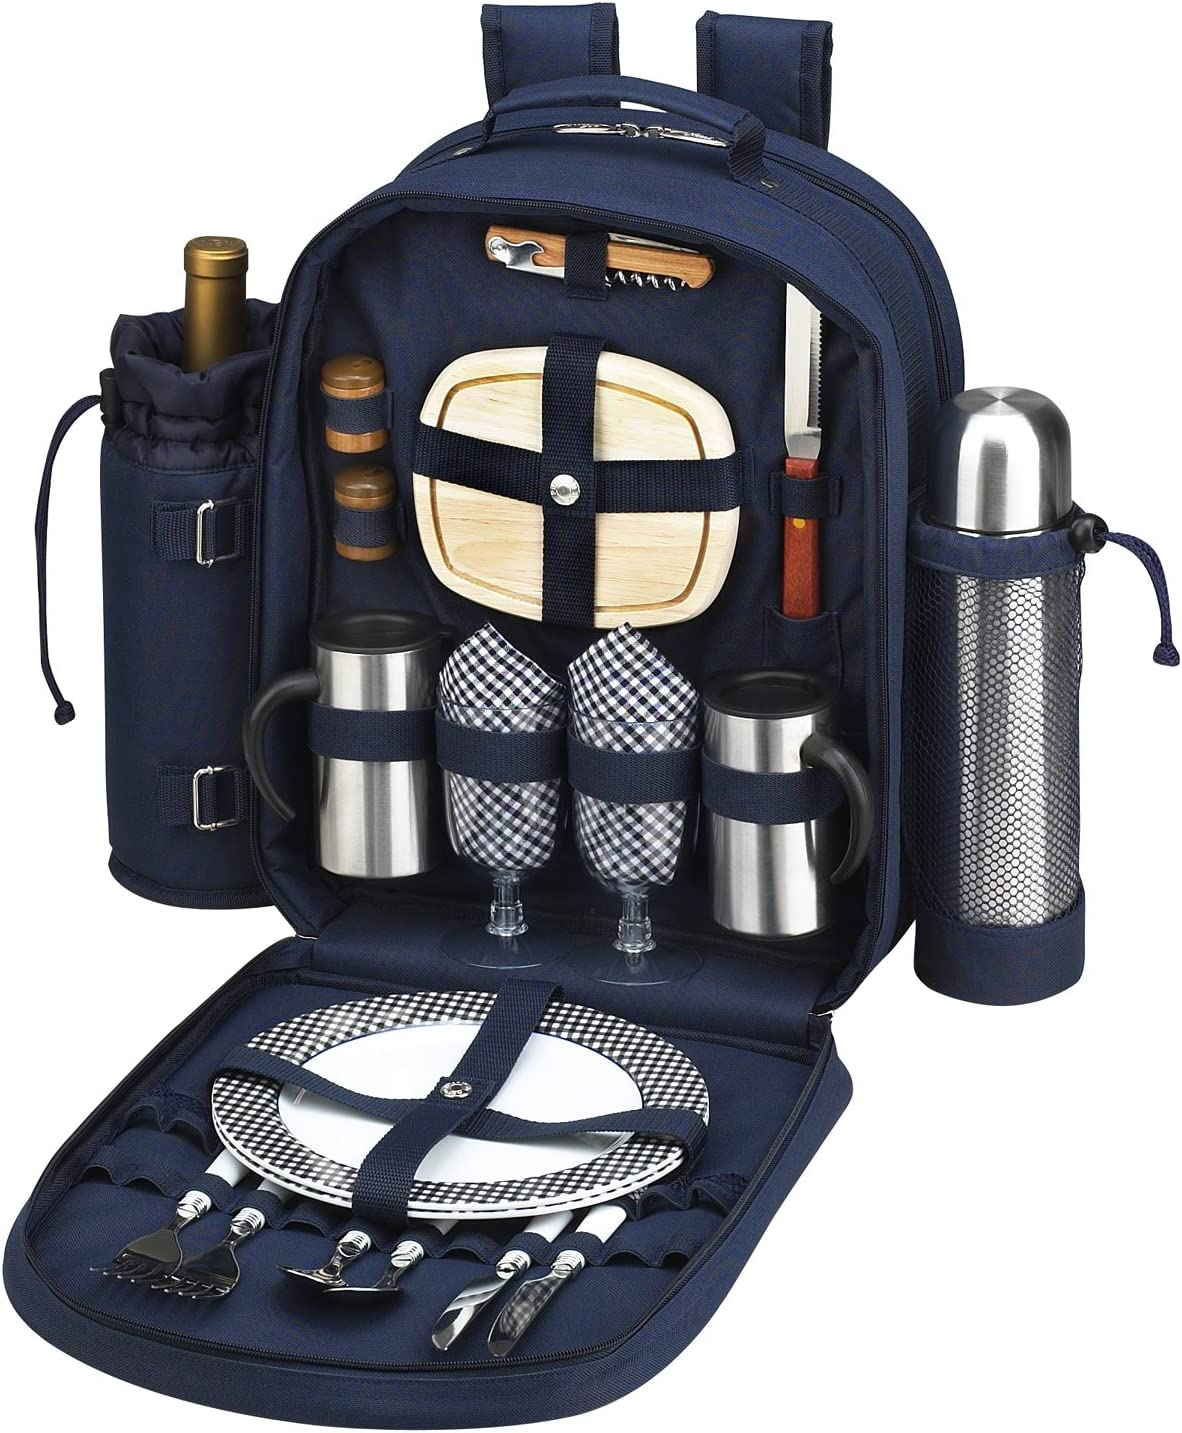 Picnic at Ascot Original Equipped 2 Person Clearance SALE! Limited time! Direct store with Backpack